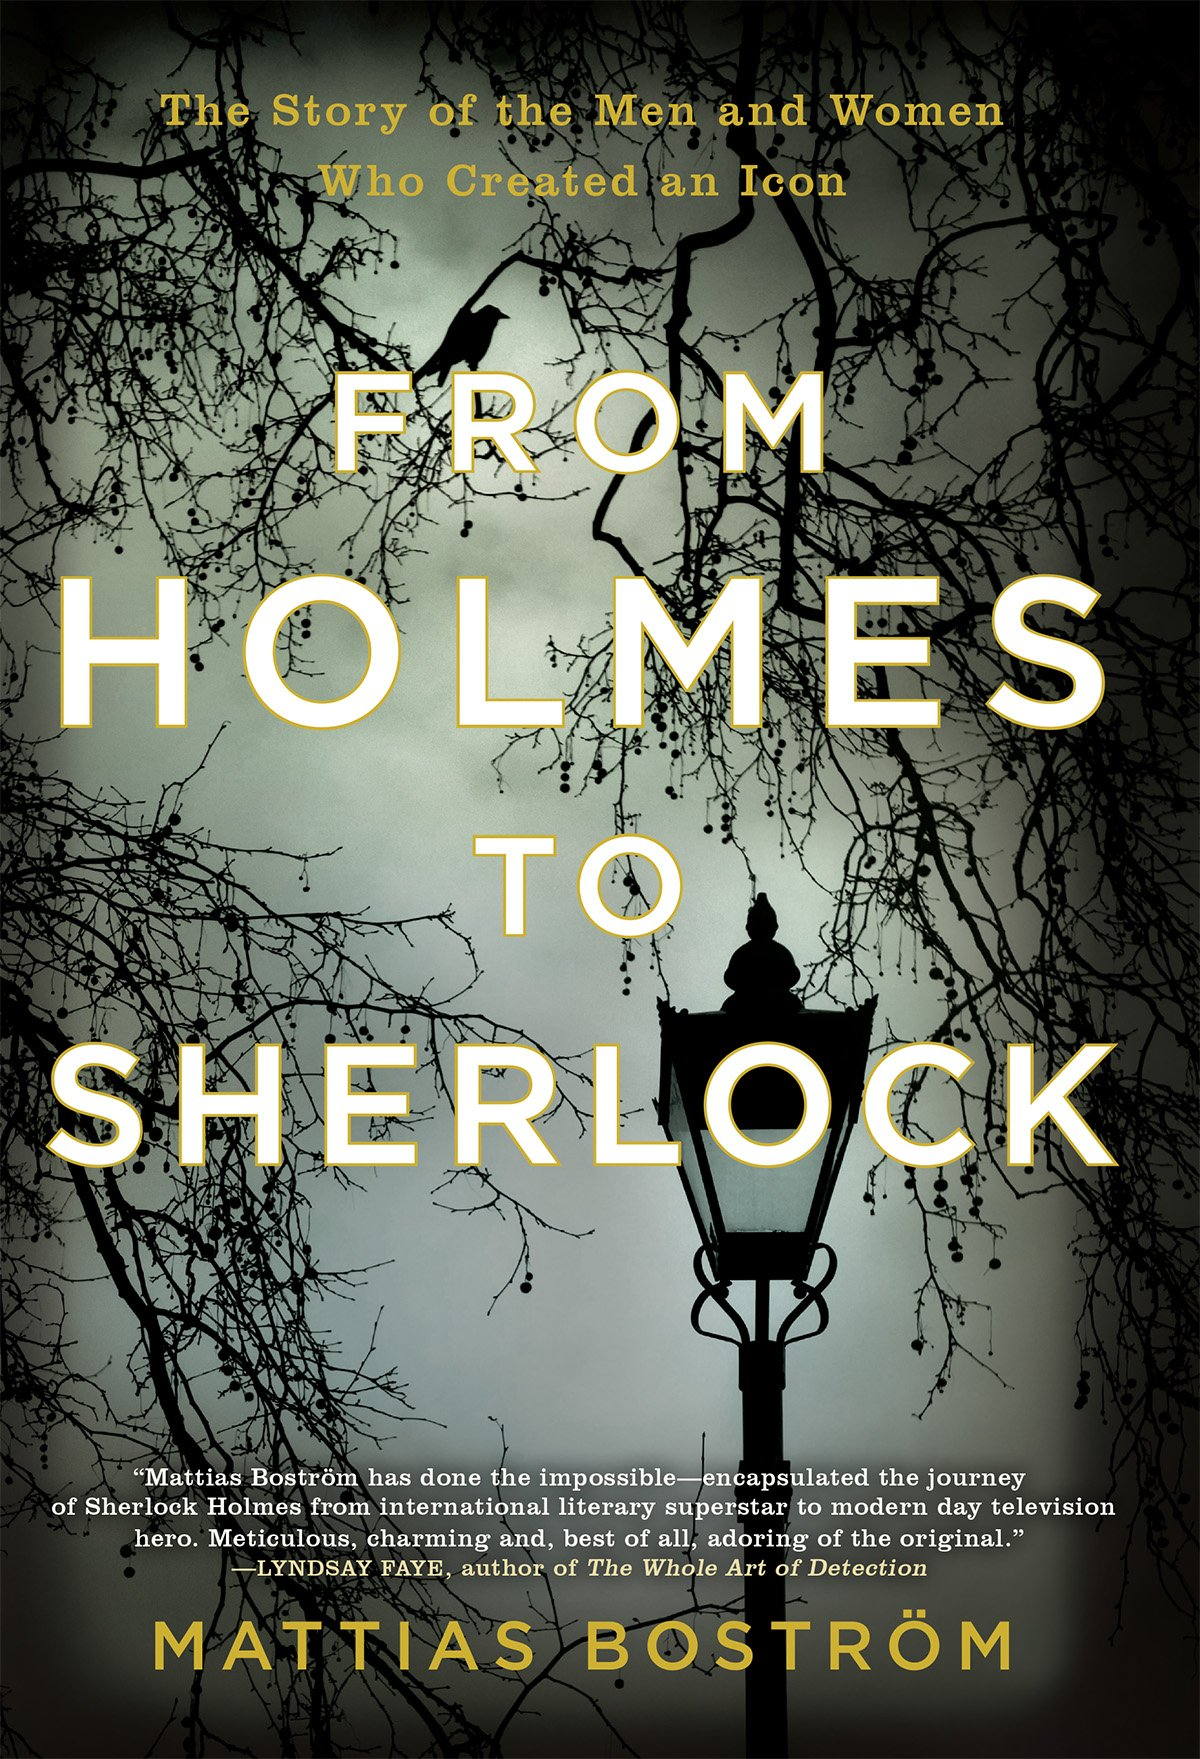 From Holmes to Sherlock: The Story of the Men and Women Who Created